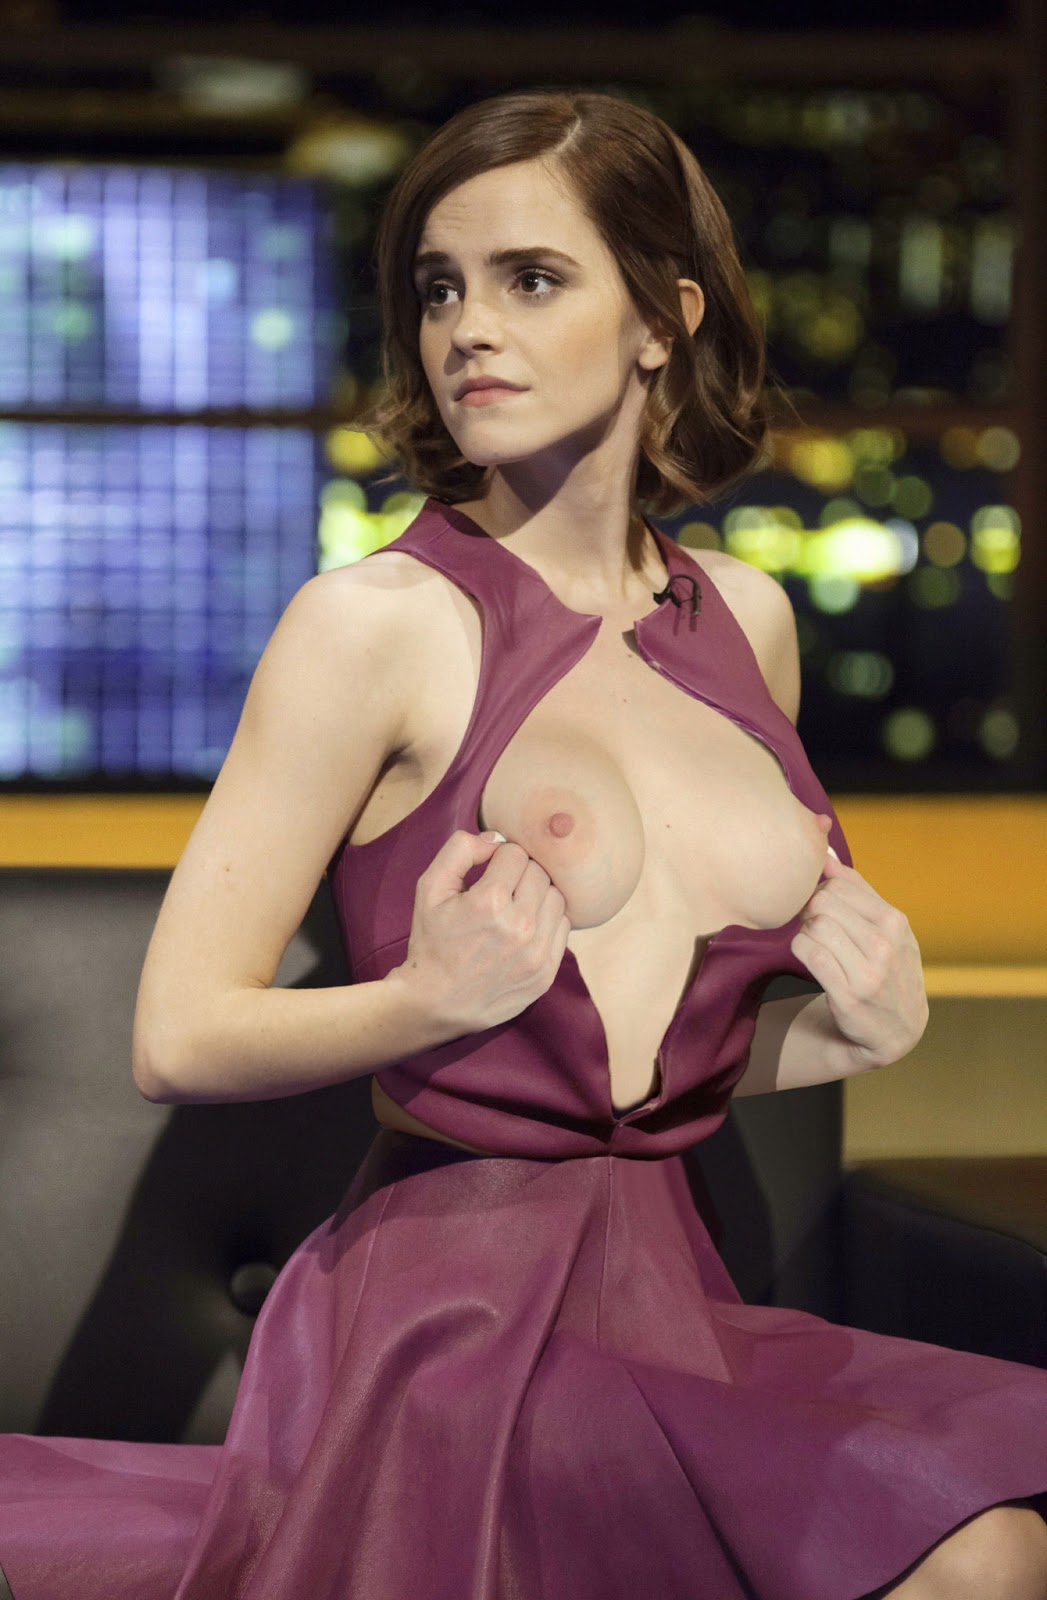 Lo Emma Watson Nude In Tv Show Showing Her Boobs Pussy Fake